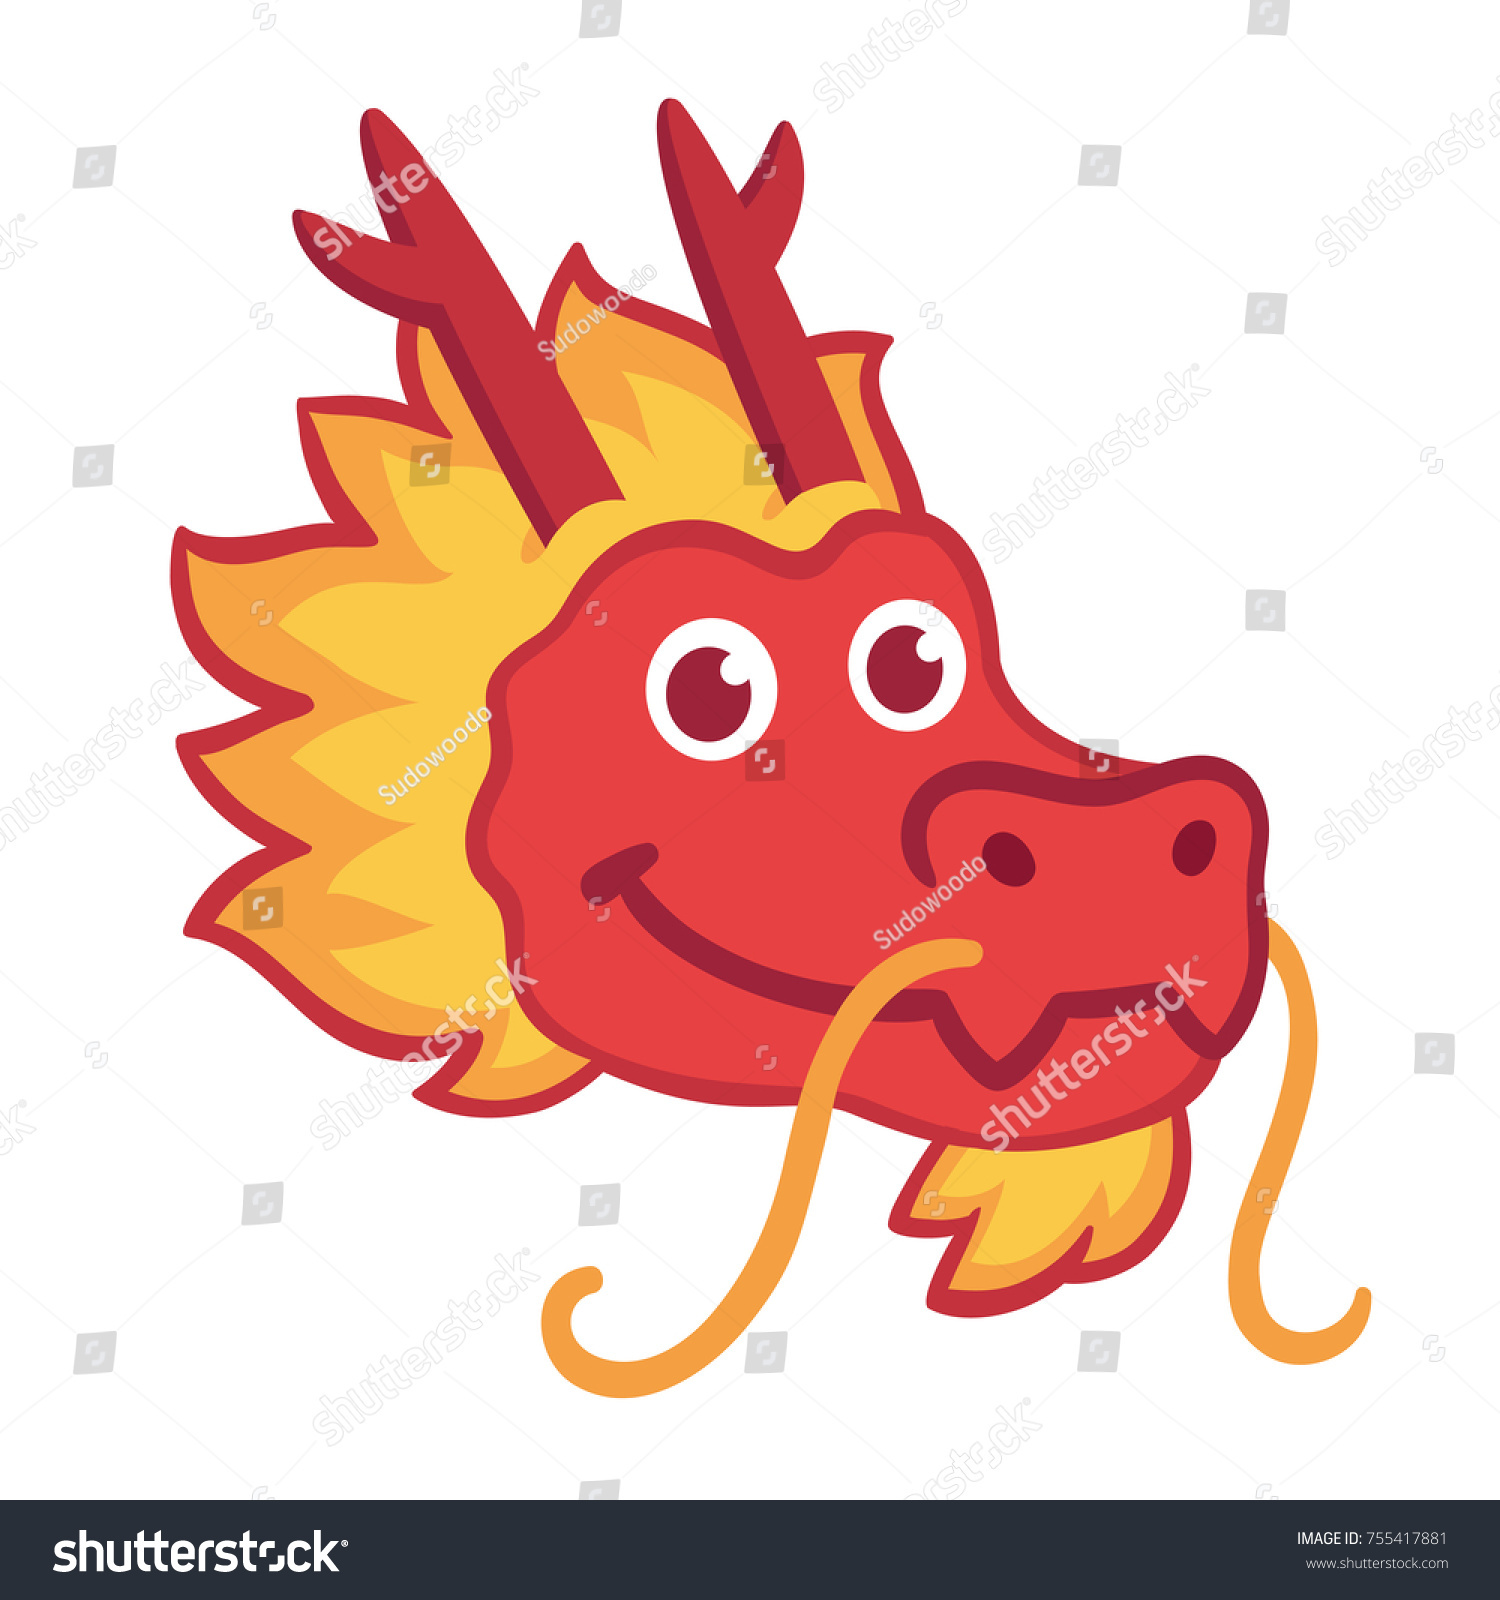 Chinese new year dragon symbol choice image symbol and sign ideas red chinese dragon head icon cute stock vector 755417881 red chinese dragon head icon in cute buycottarizona Gallery